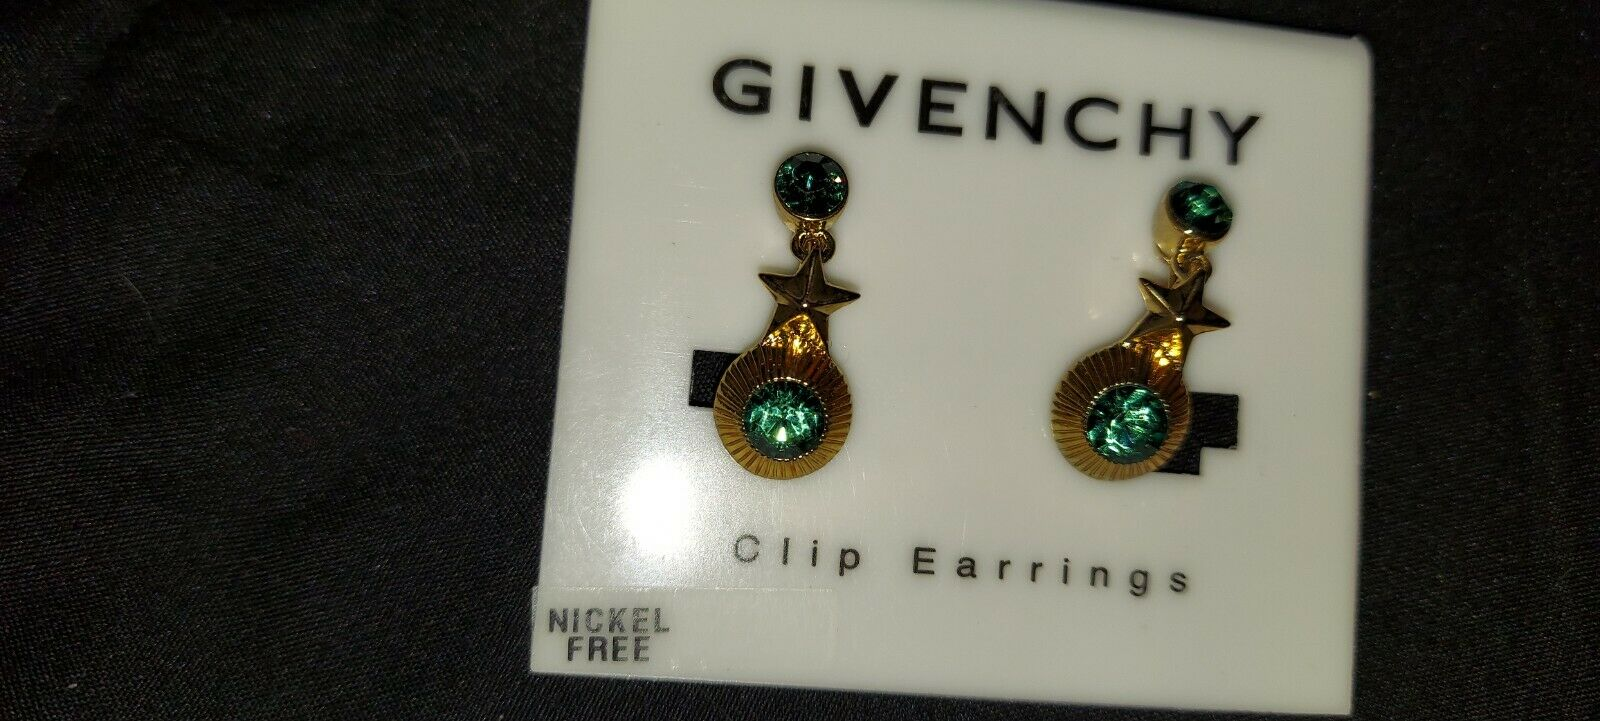 givenchy clip earrings - image 6